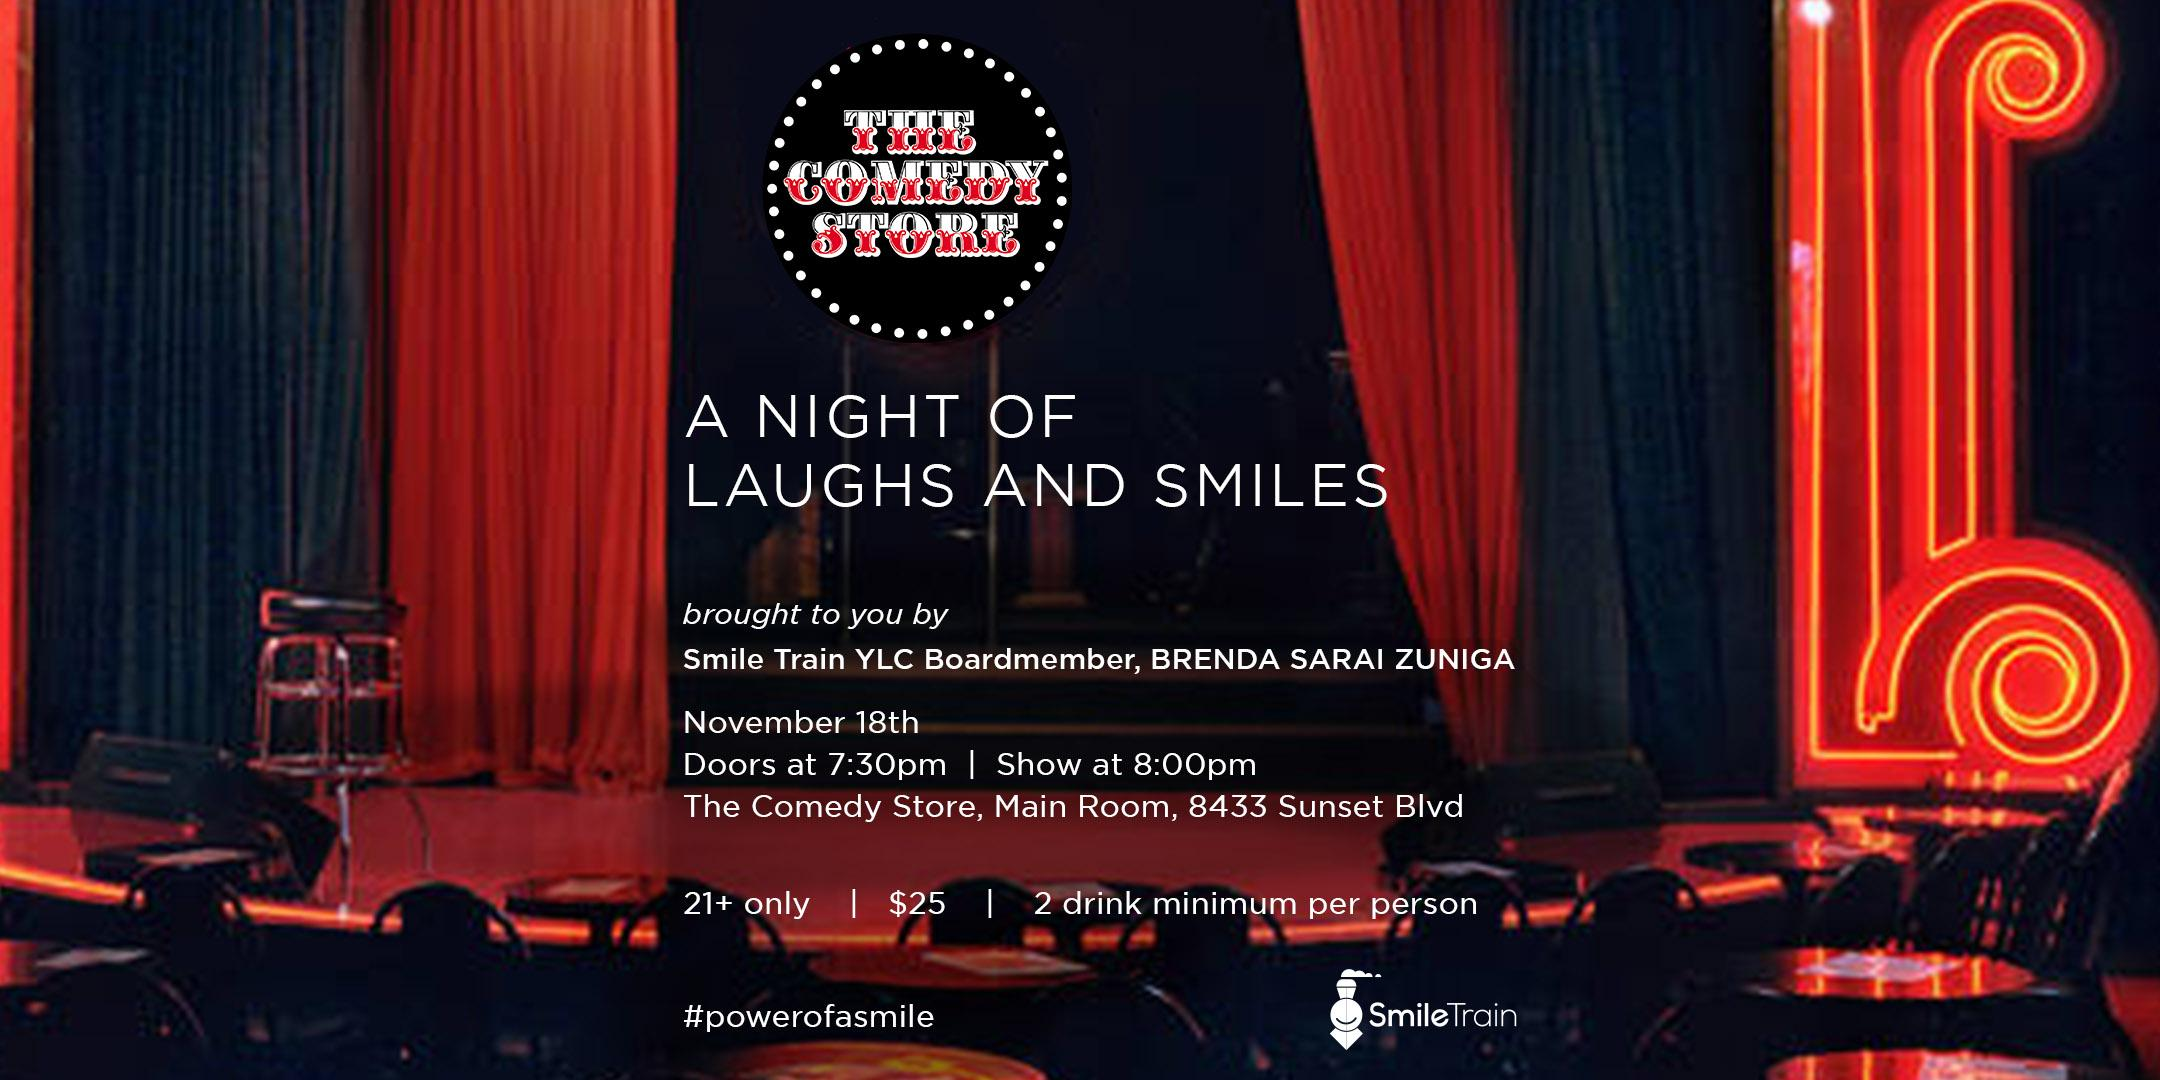 A Nights of Laughs and Smiles: A Comedy Fundraiser to Benefit Smile Train